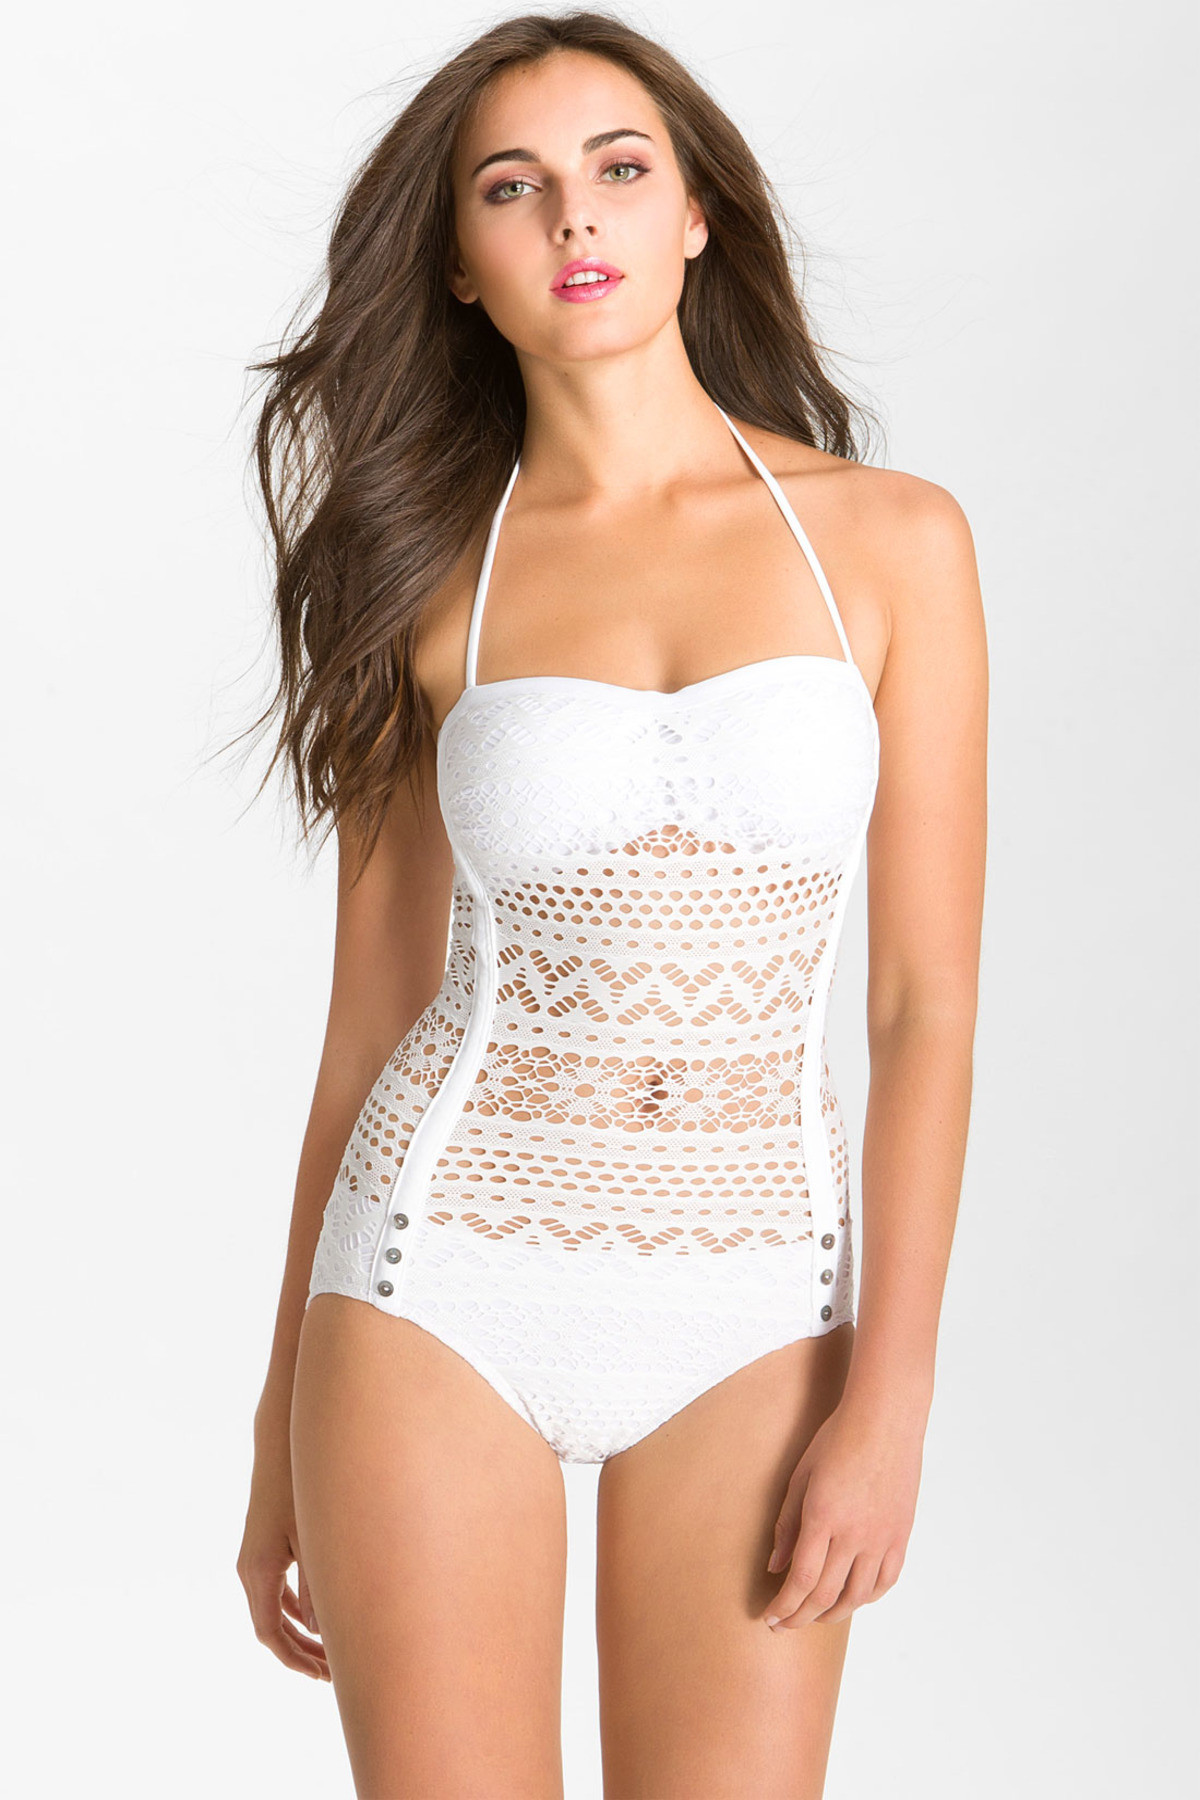 White Crochet One Piece Swimsuit New Lyst Robin Piccone Penelope Crochet Overlay E Piece Of Top 42 Images White Crochet One Piece Swimsuit